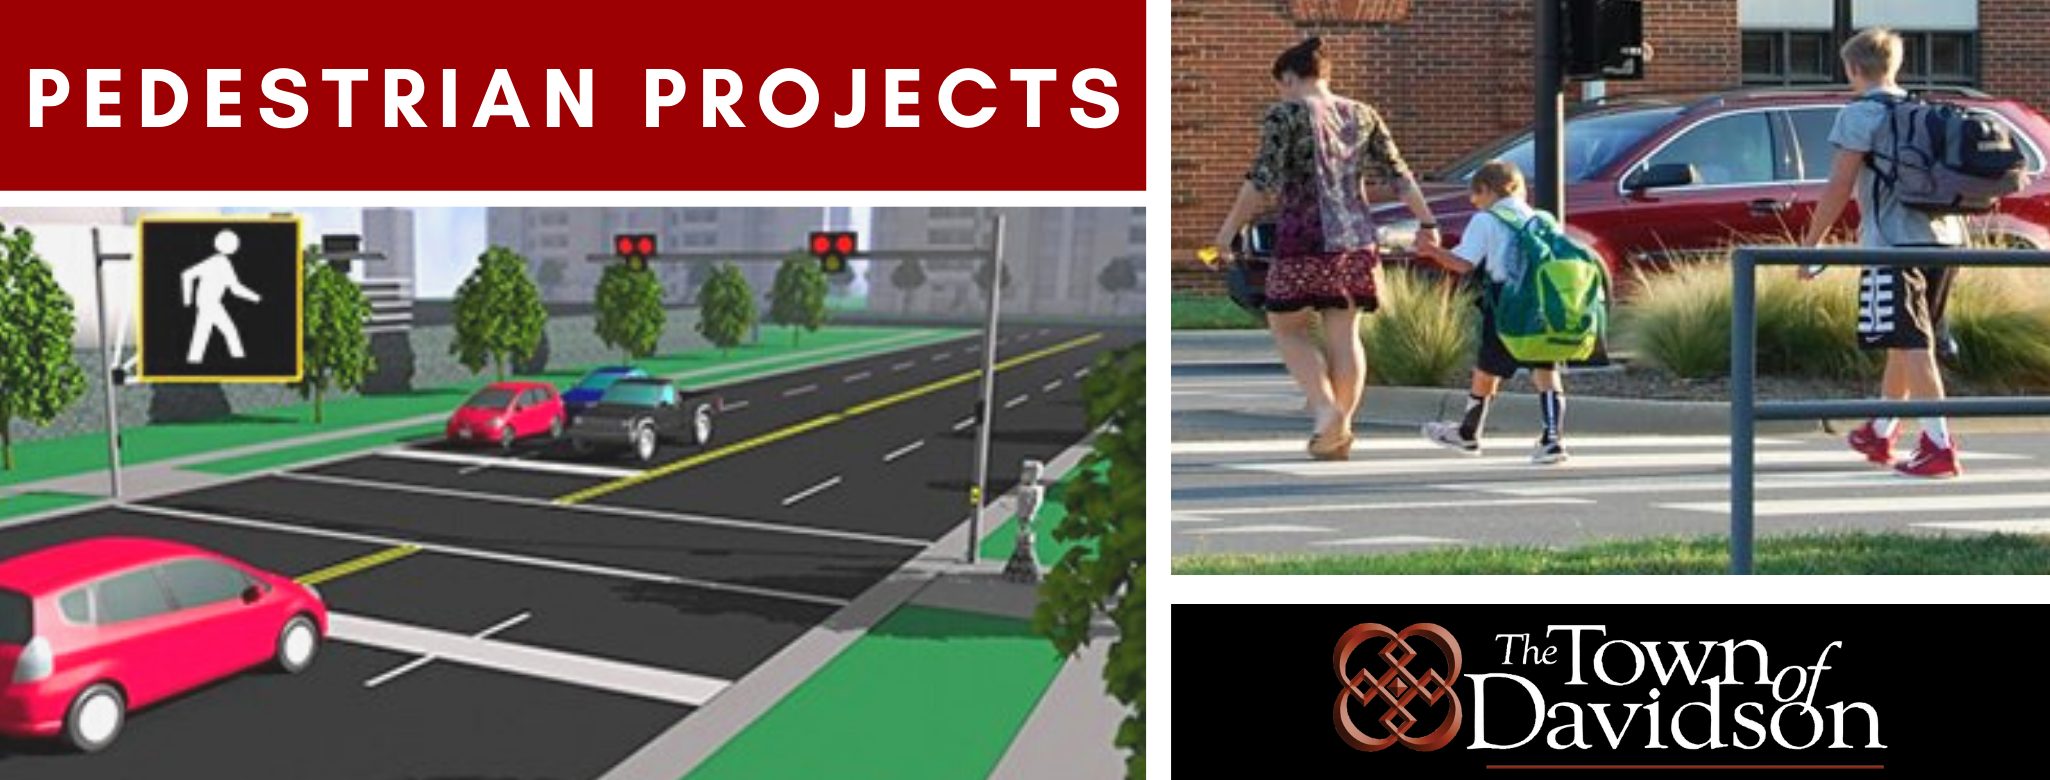 Pedestrian Projects